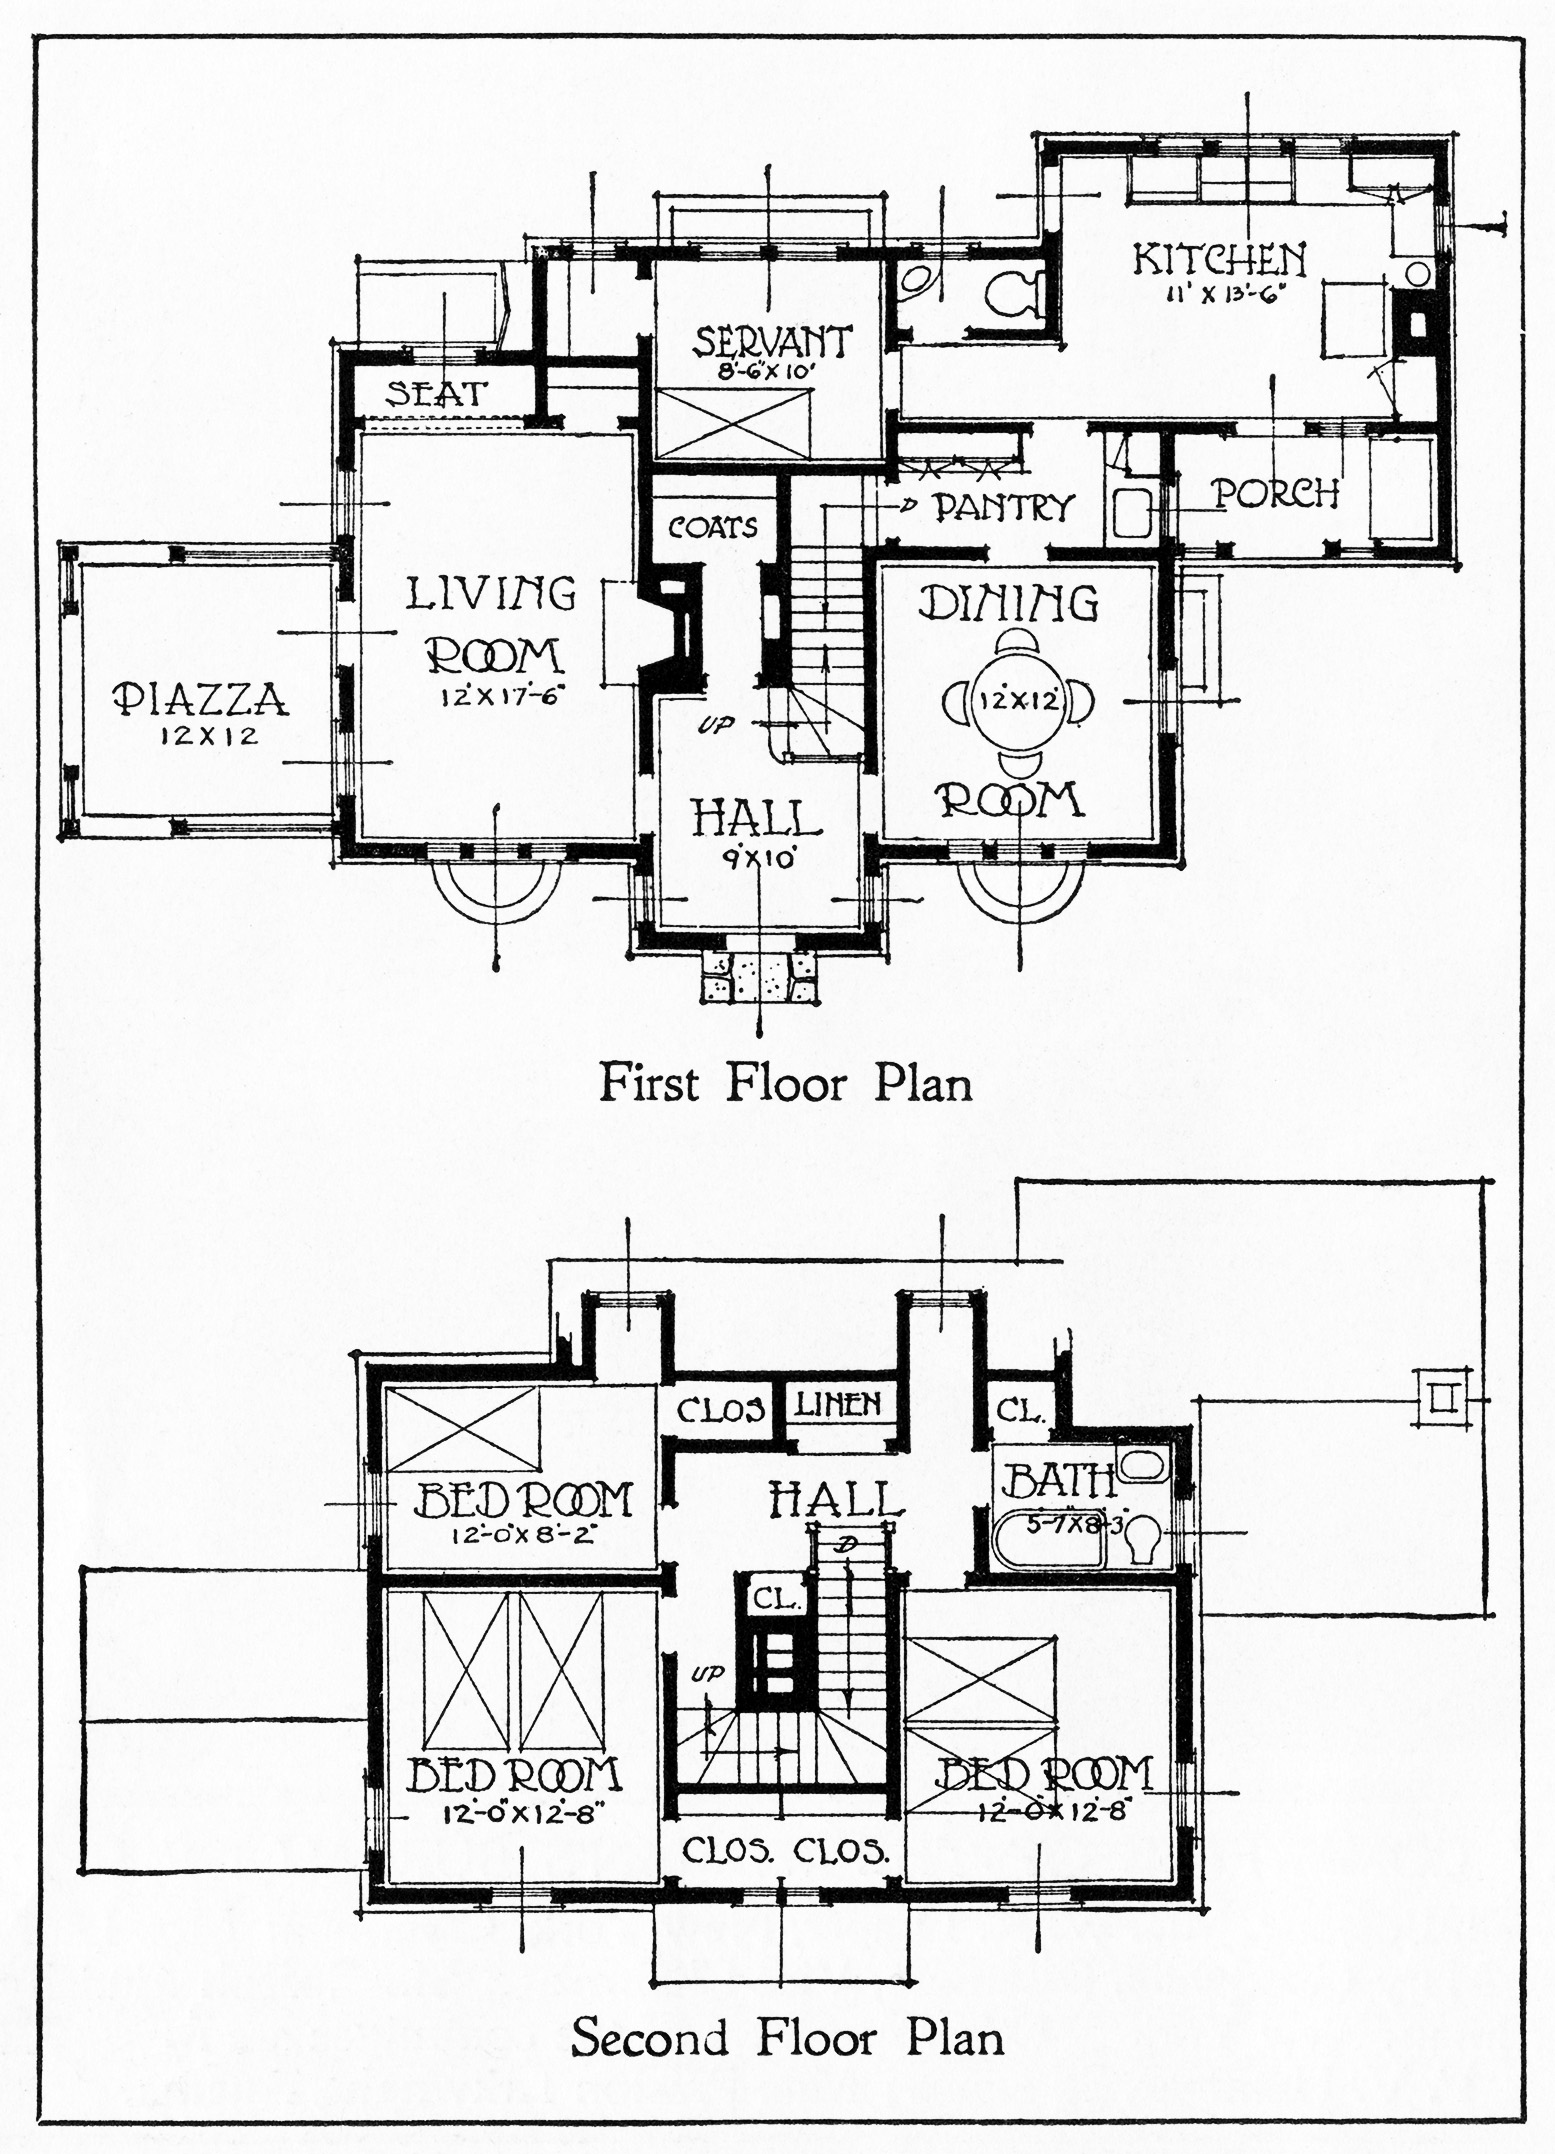 vintage house plans old fashioned home antique house clipart black and white house - Vintage Farmhouse Plans